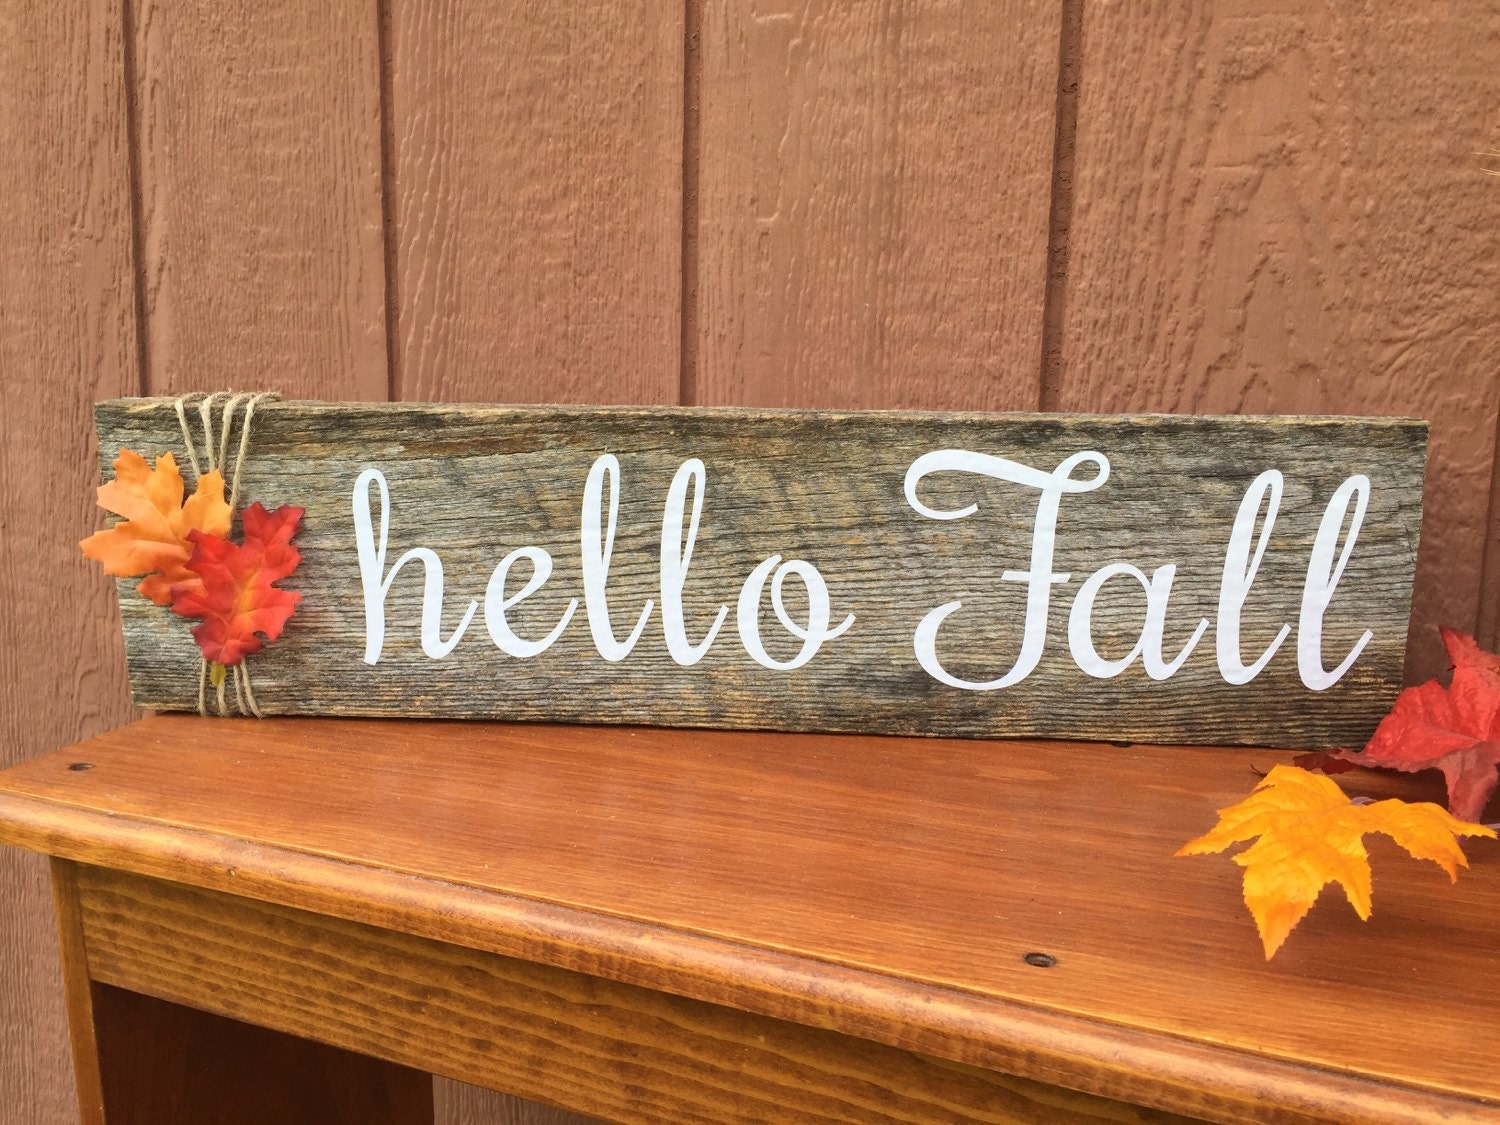 wood craft signs ideas customizable hello fall wood sign by thehopsonshop on etsy 5757